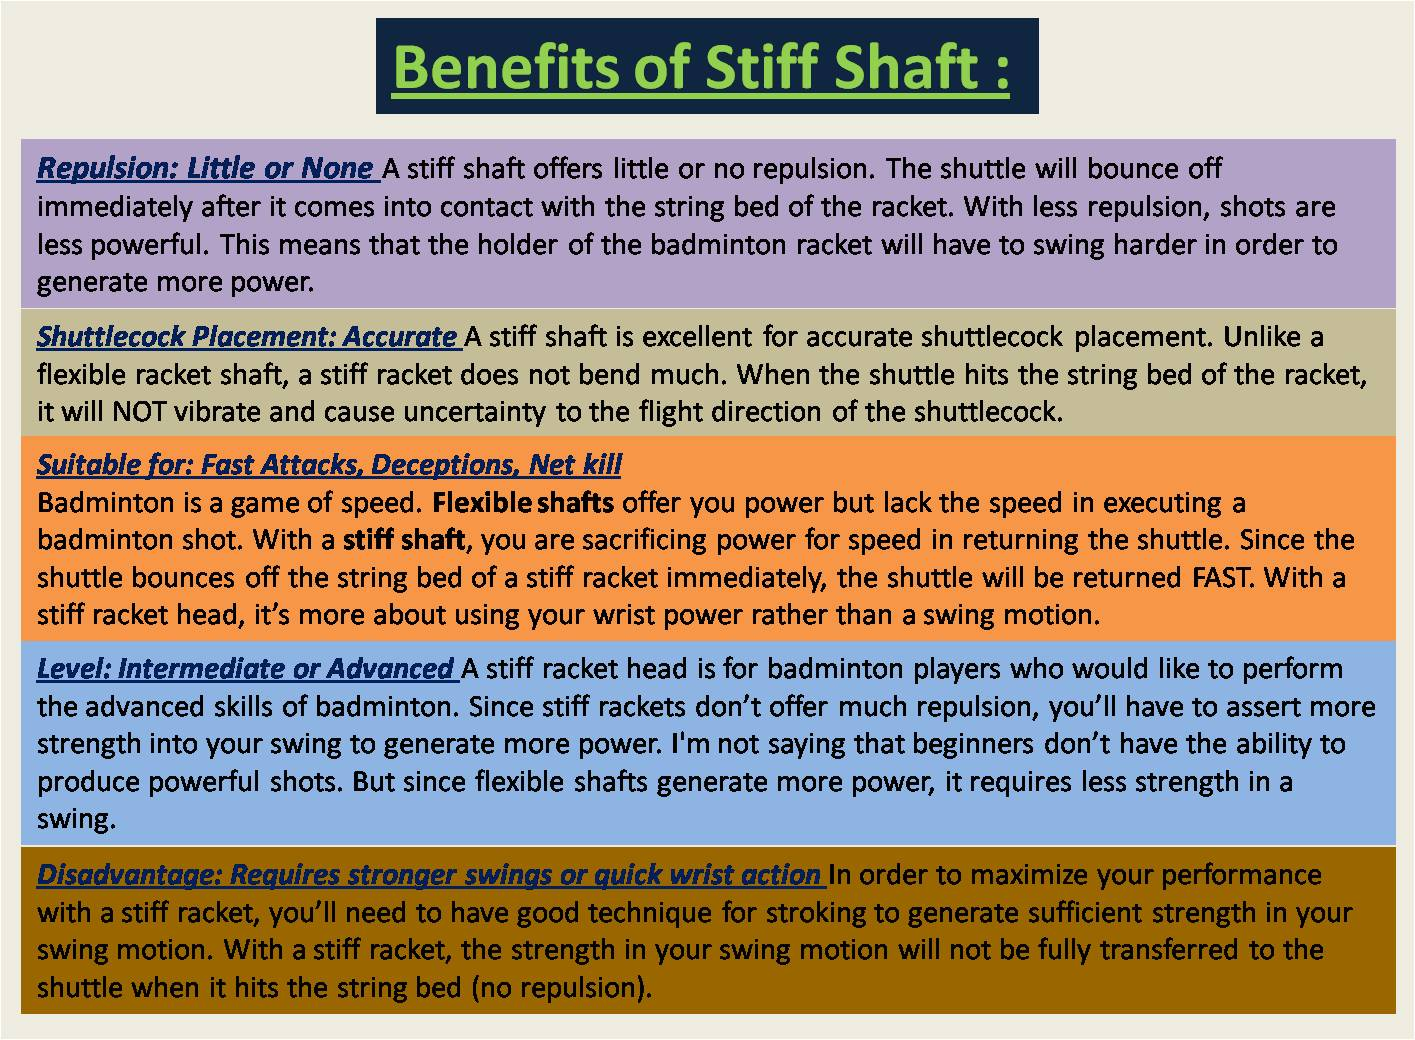 Benefits of Stiff Shaft